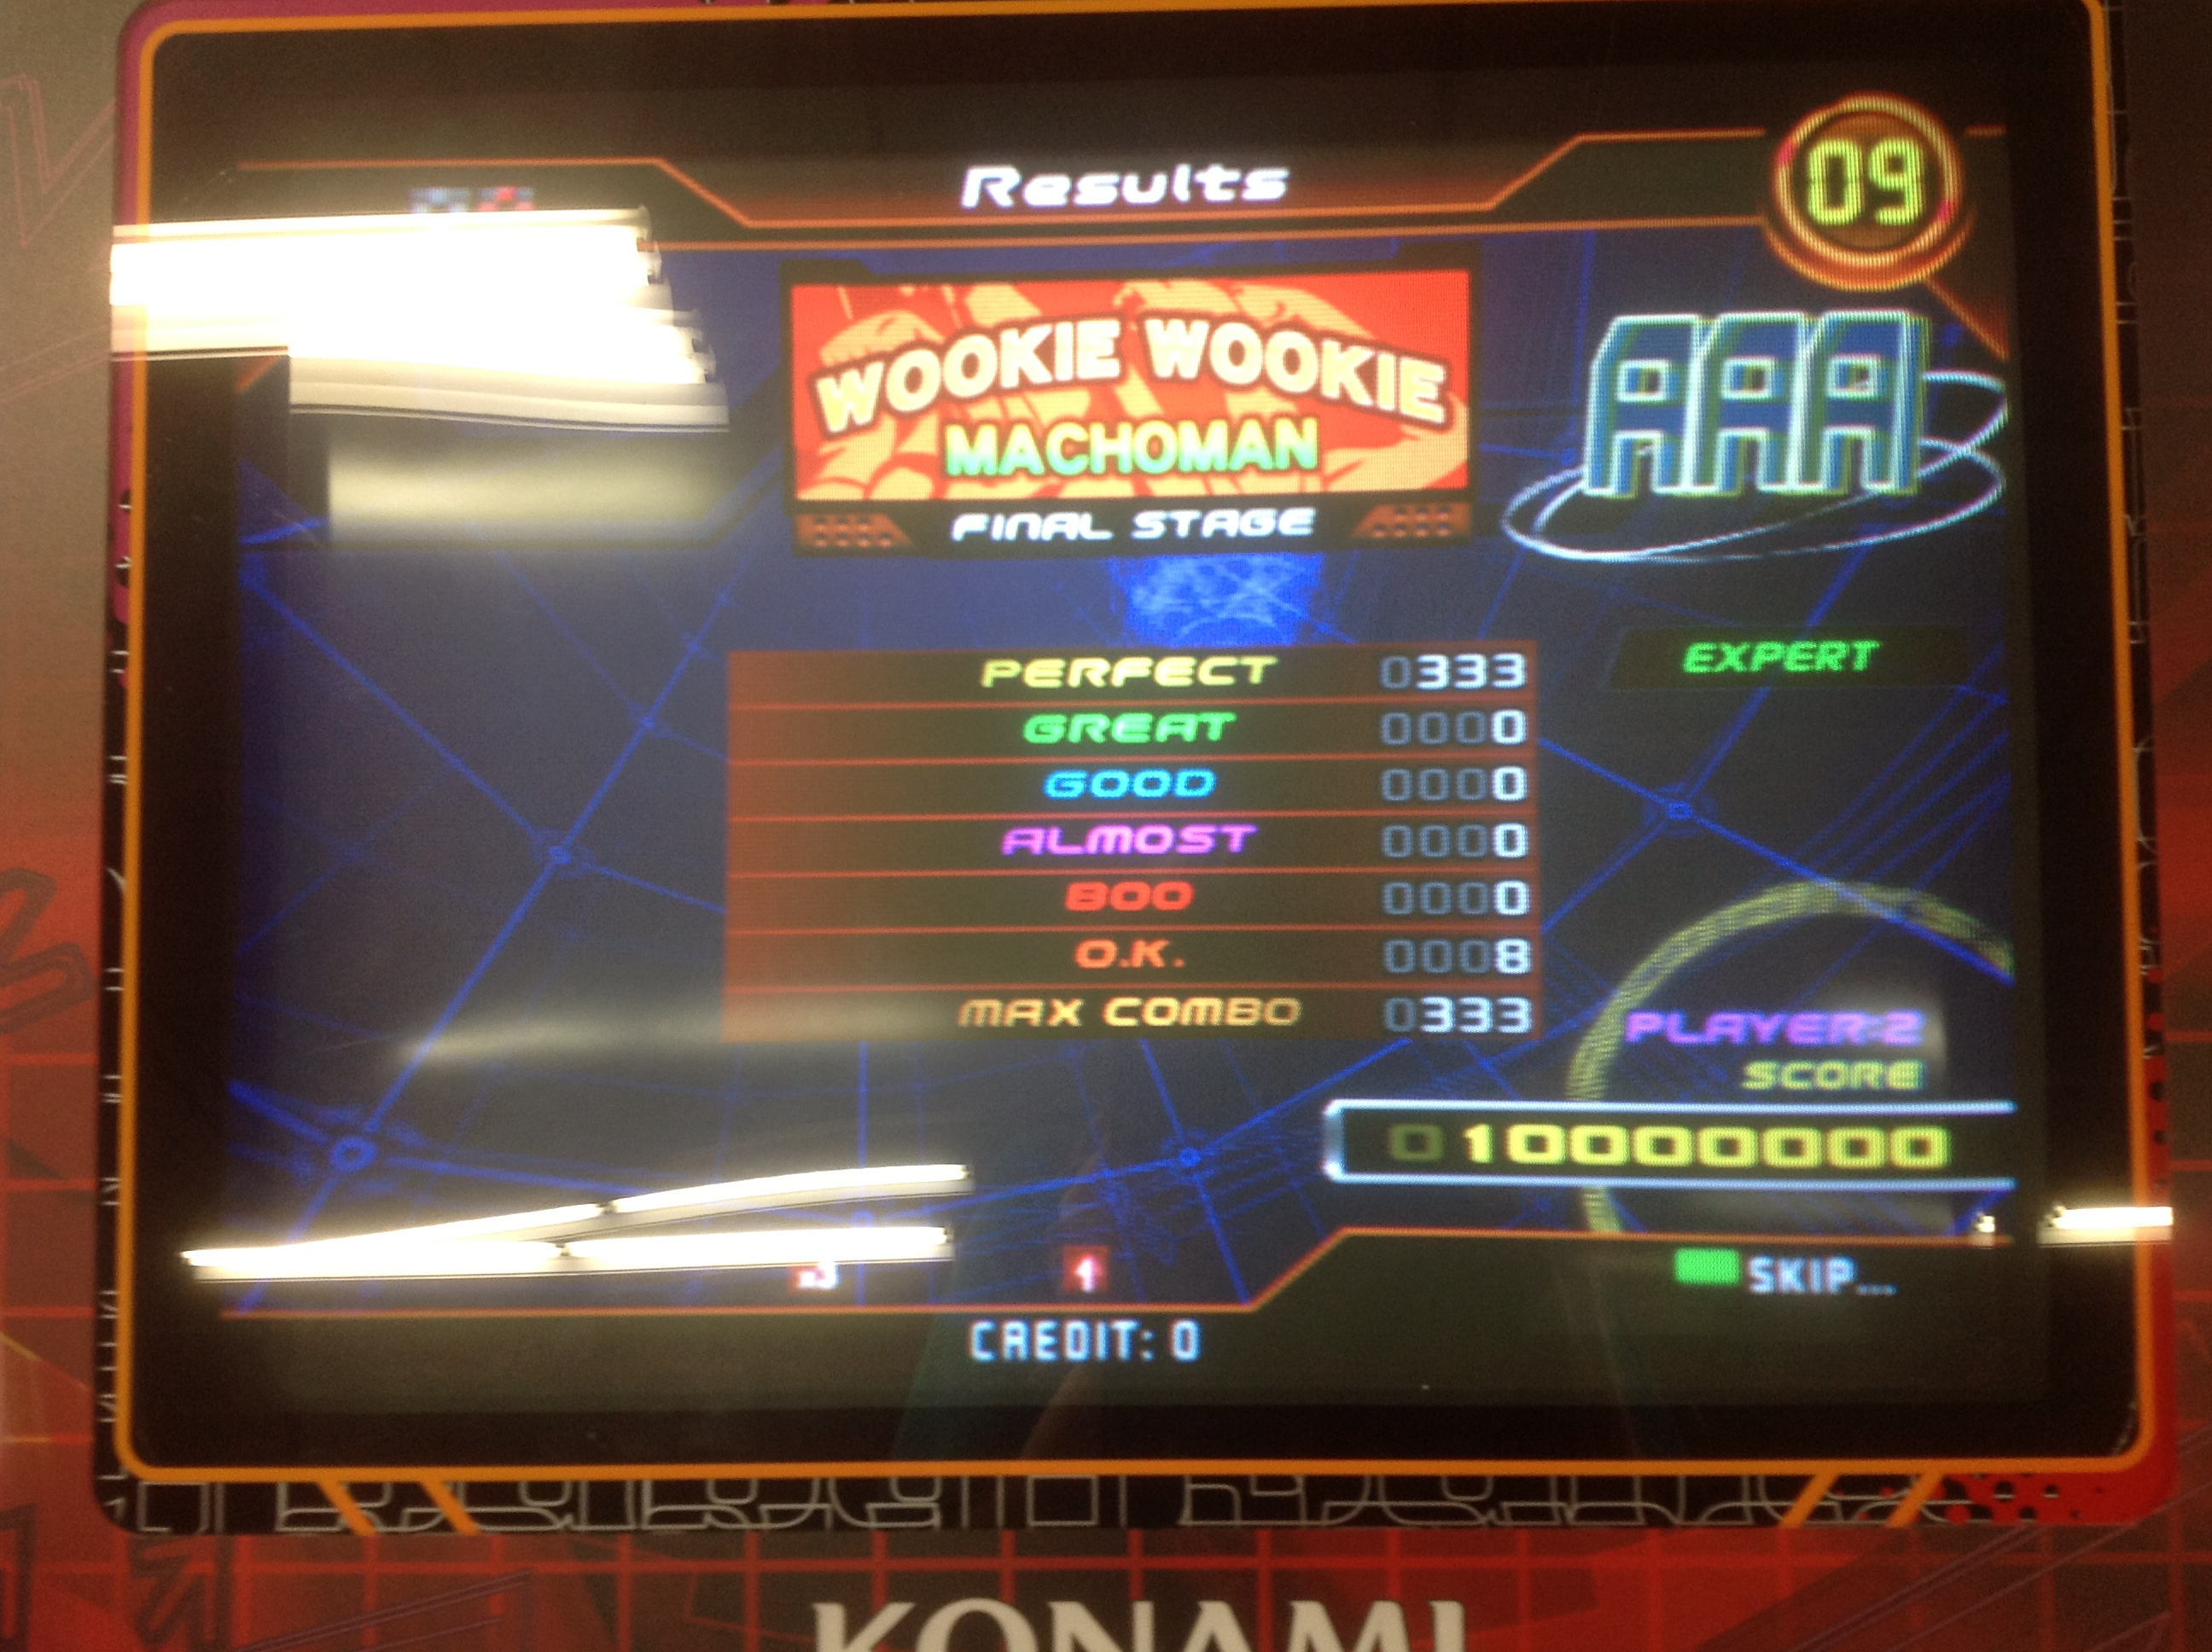 Kon - WOOKIE WOOKIE (Expert) AAA on DDR SuperNOVA (North America)